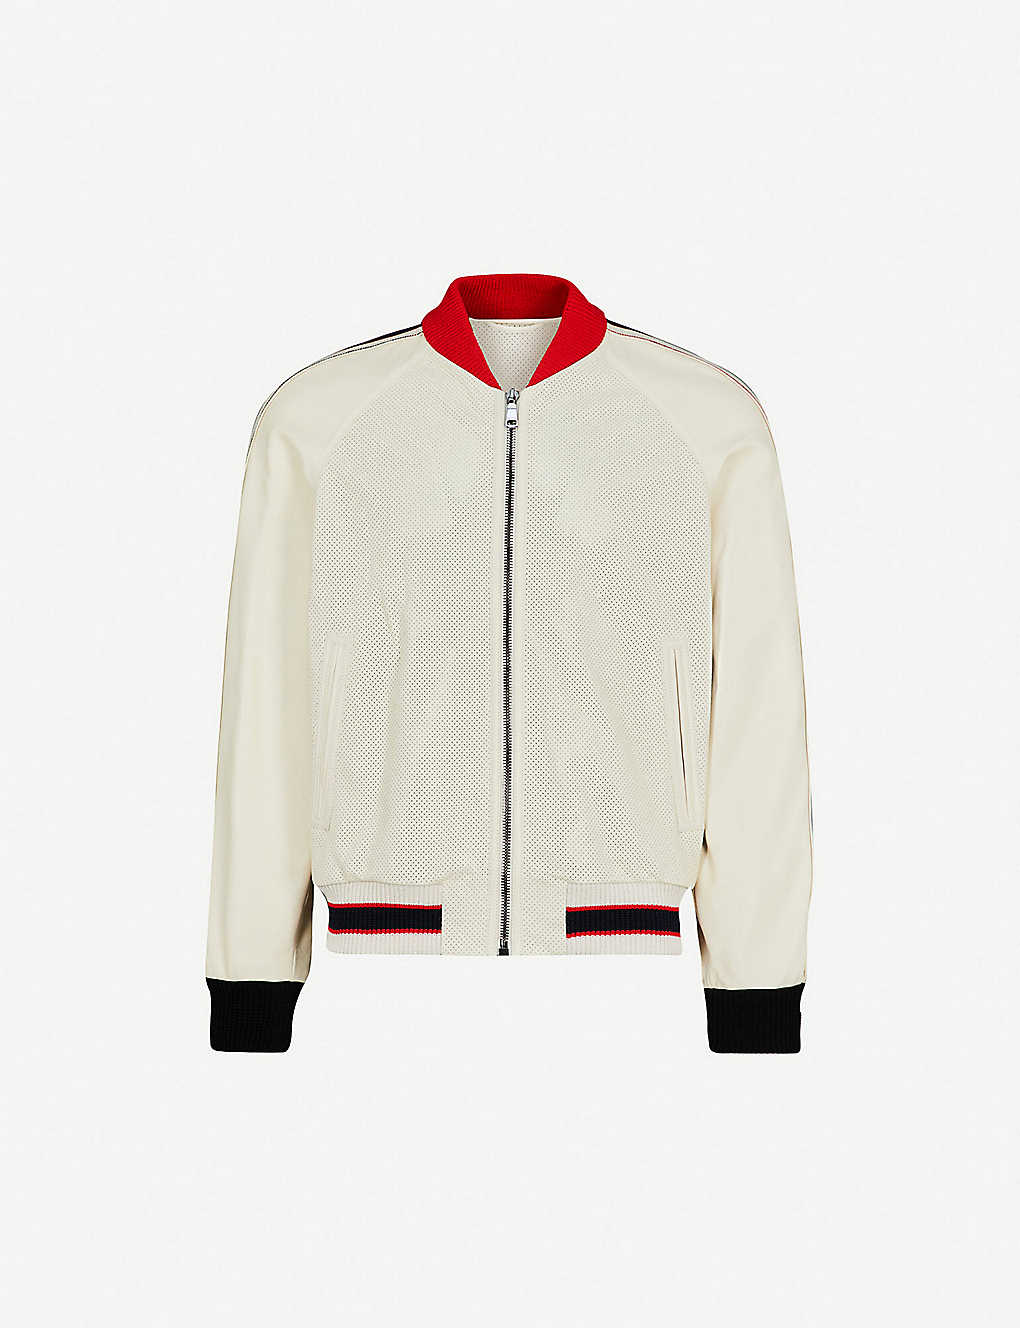 67857755e GUCCI - Perforated logo-print leather bomber jacket | Selfridges.com